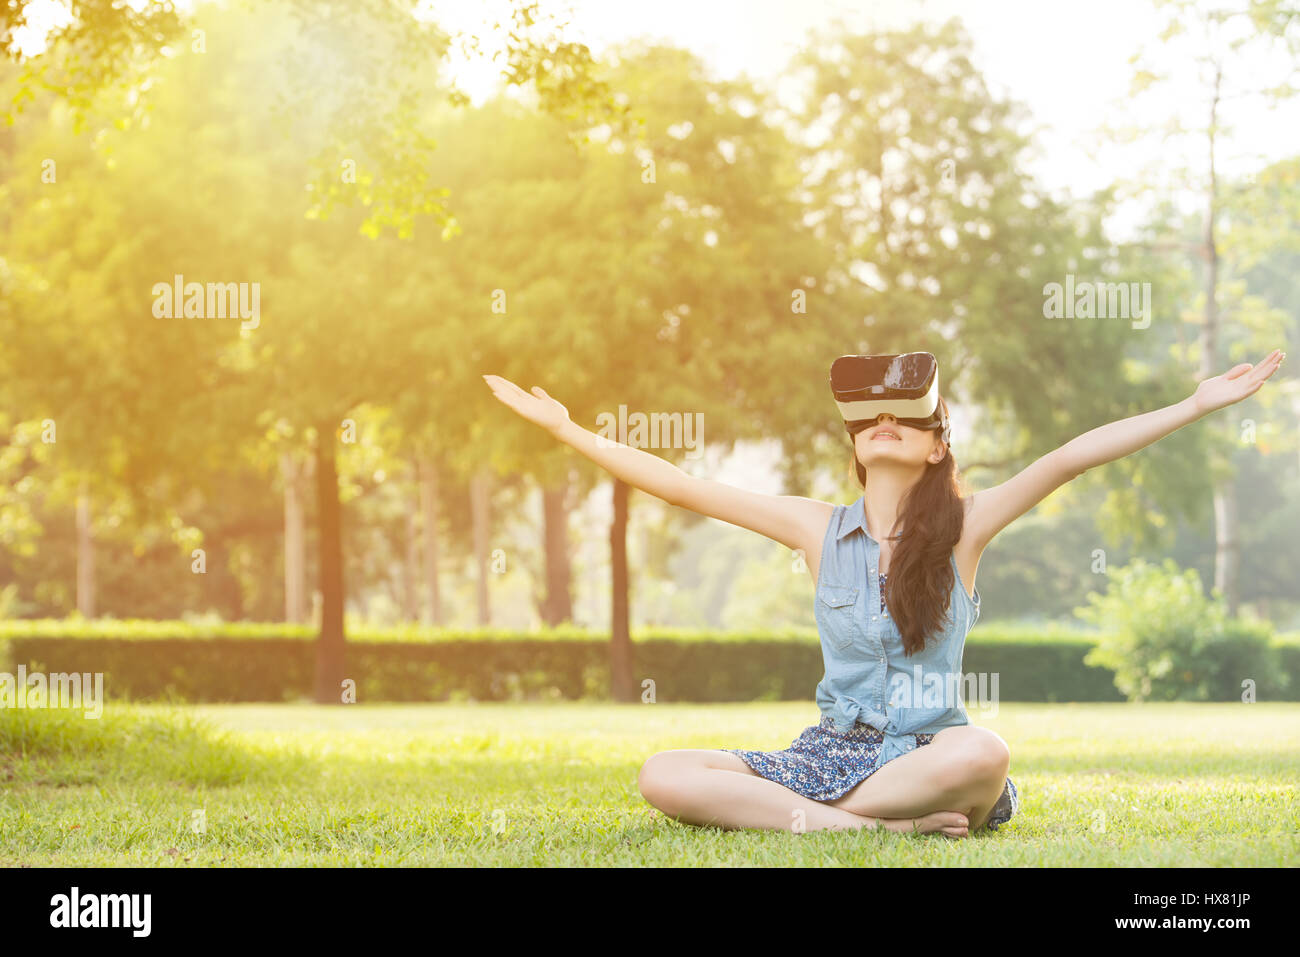 30d049bdbd beautiful asian woman enjoy virtual reality sitting on grass in outdoor  park. VR headset glasses device. nature outdoors background. people and  techno